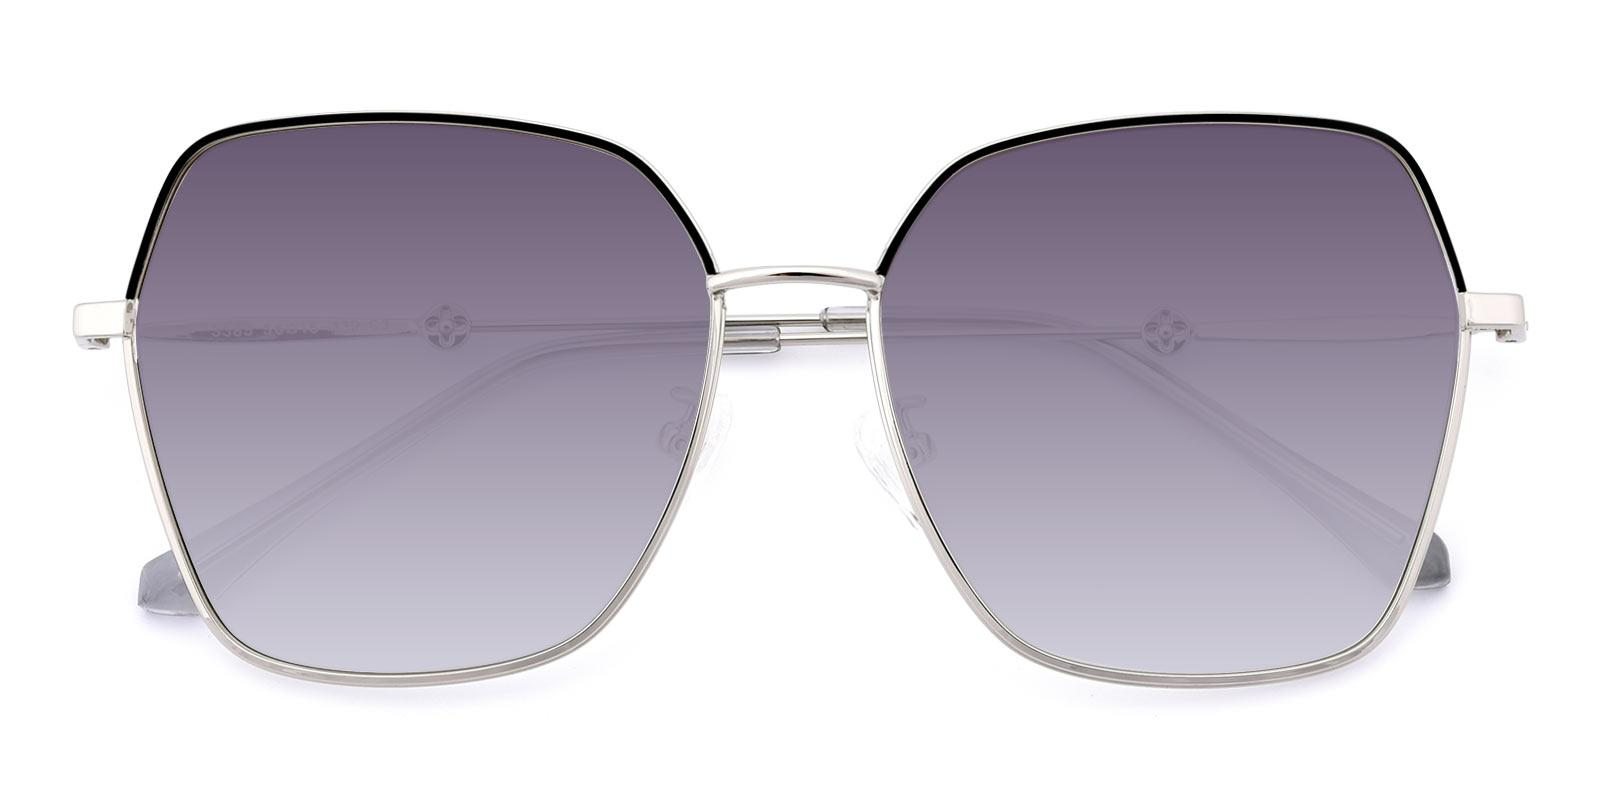 AfternoonTea-Silver-Square-Metal-Sunglasses-detail